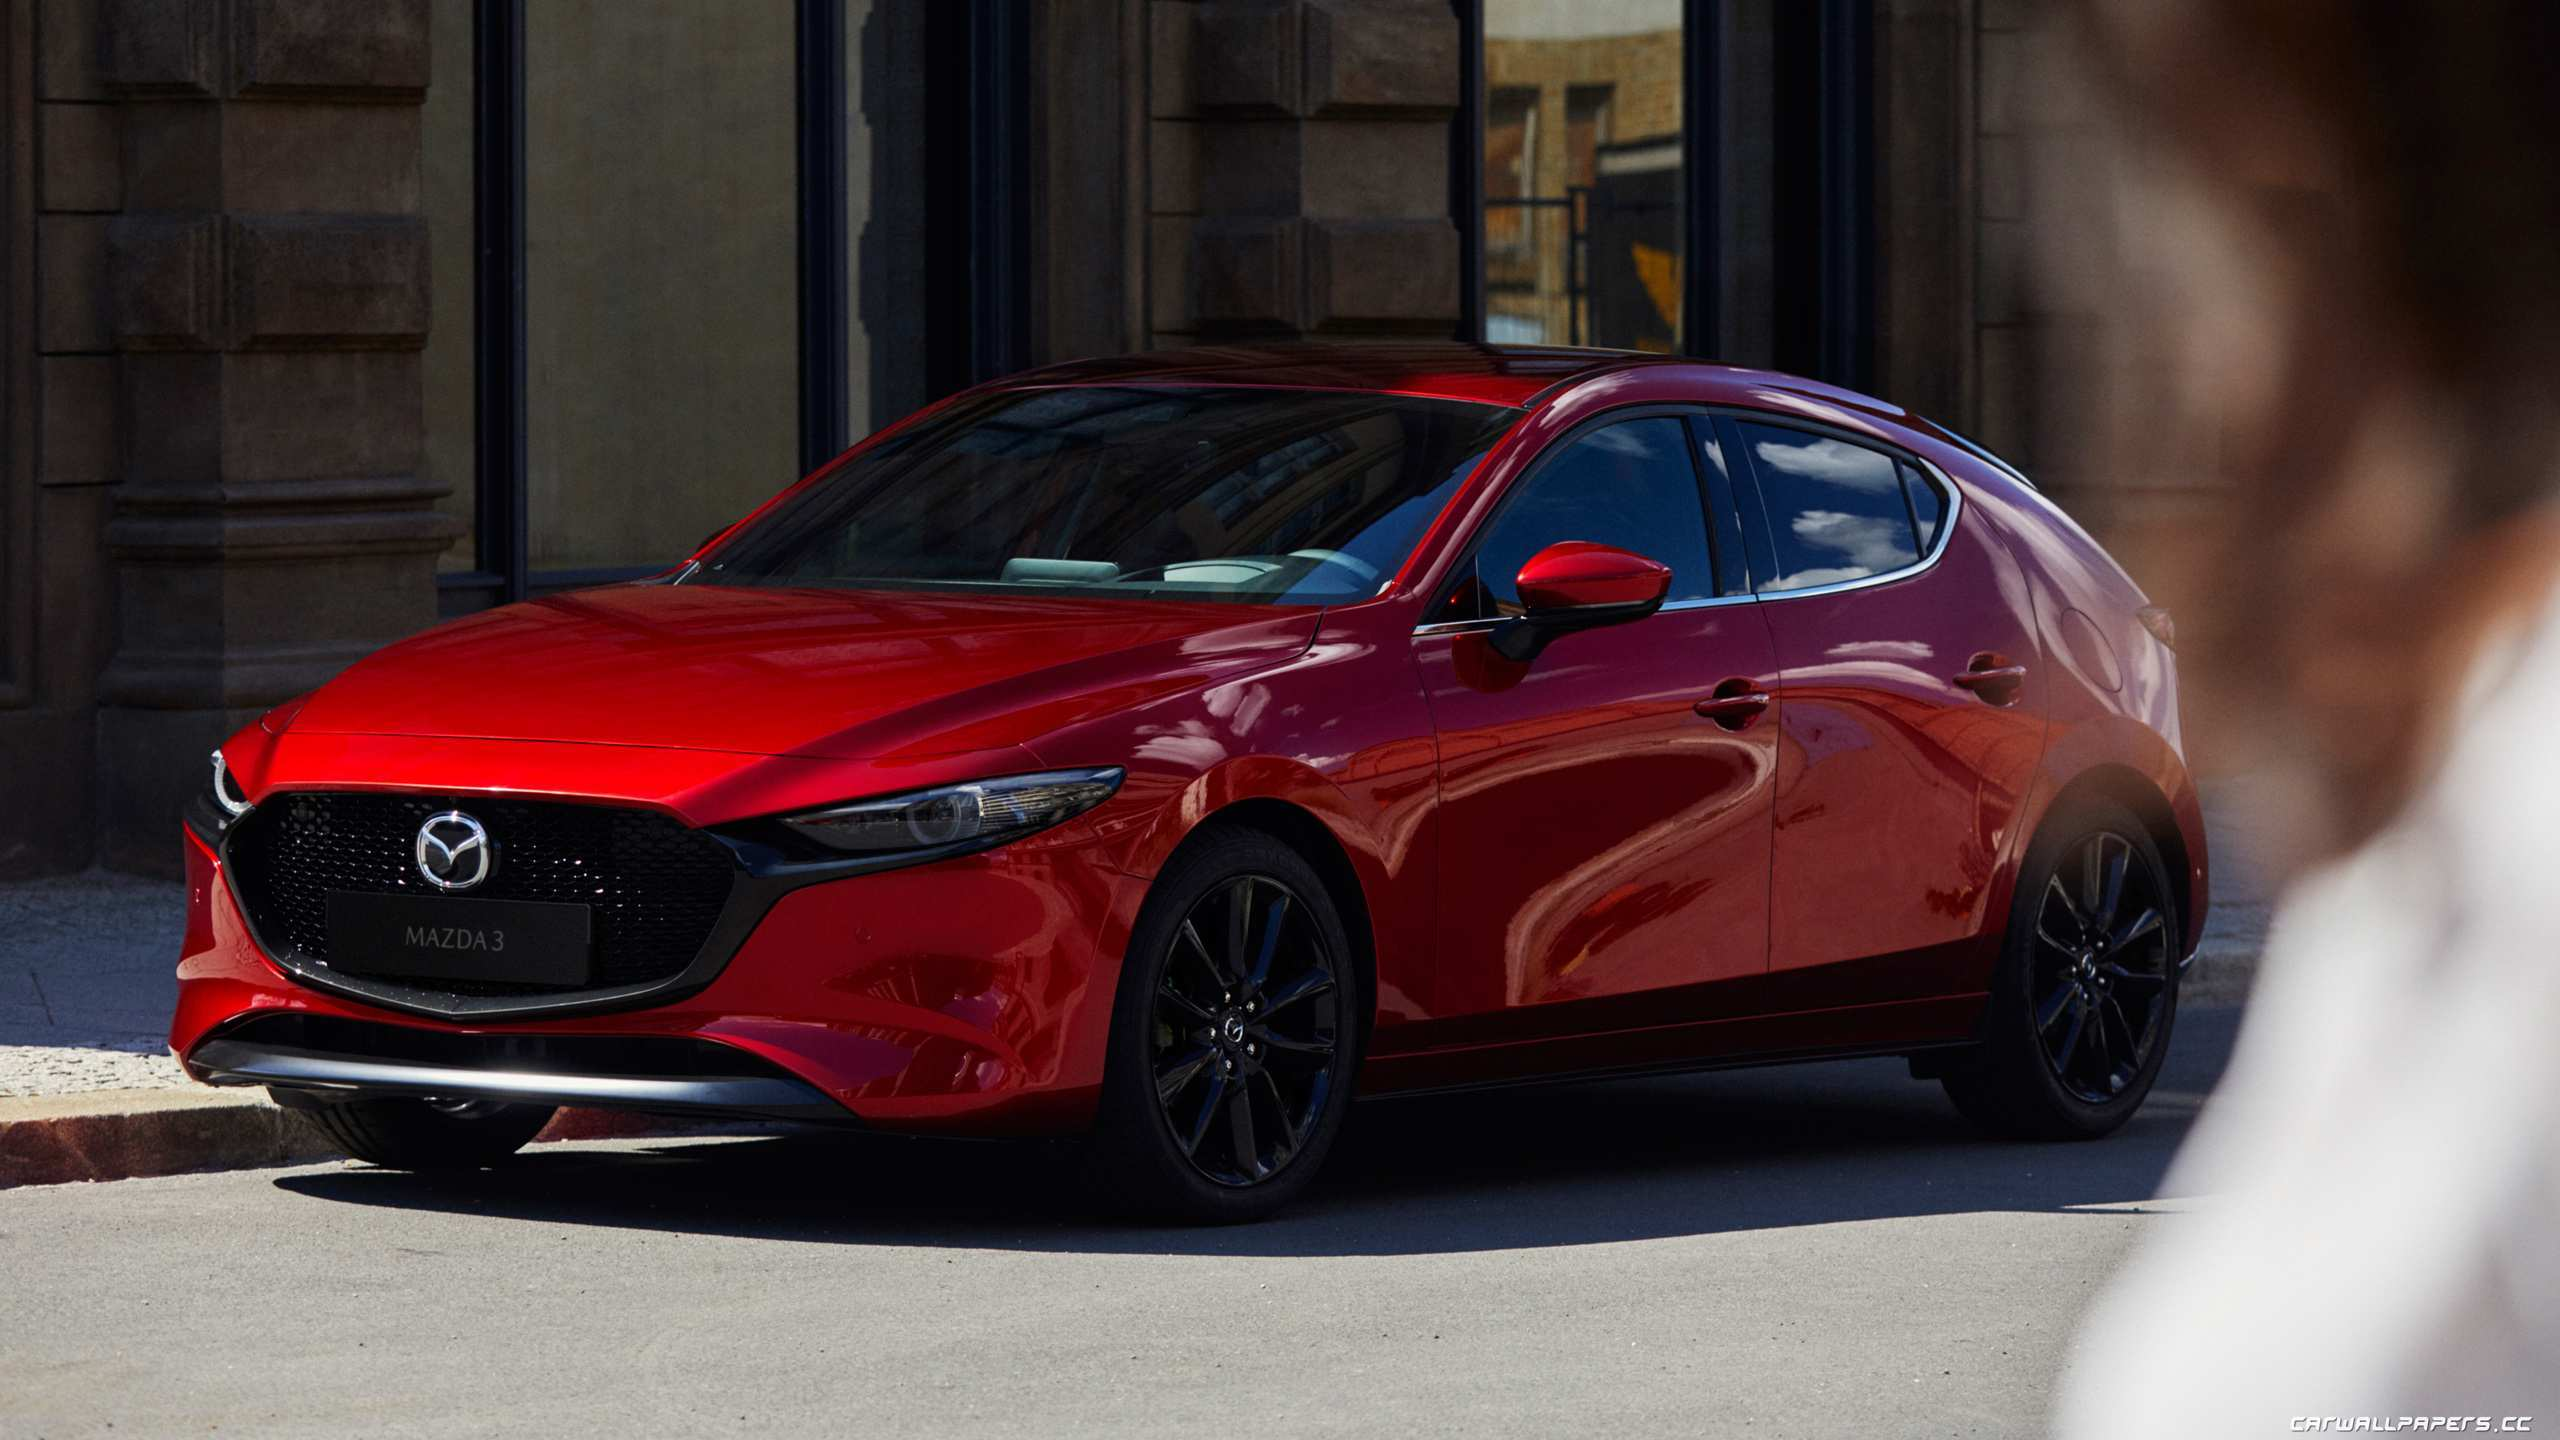 96 The Mazda 3 2019 Lanzamiento Exterior and Interior with Mazda 3 2019 Lanzamiento